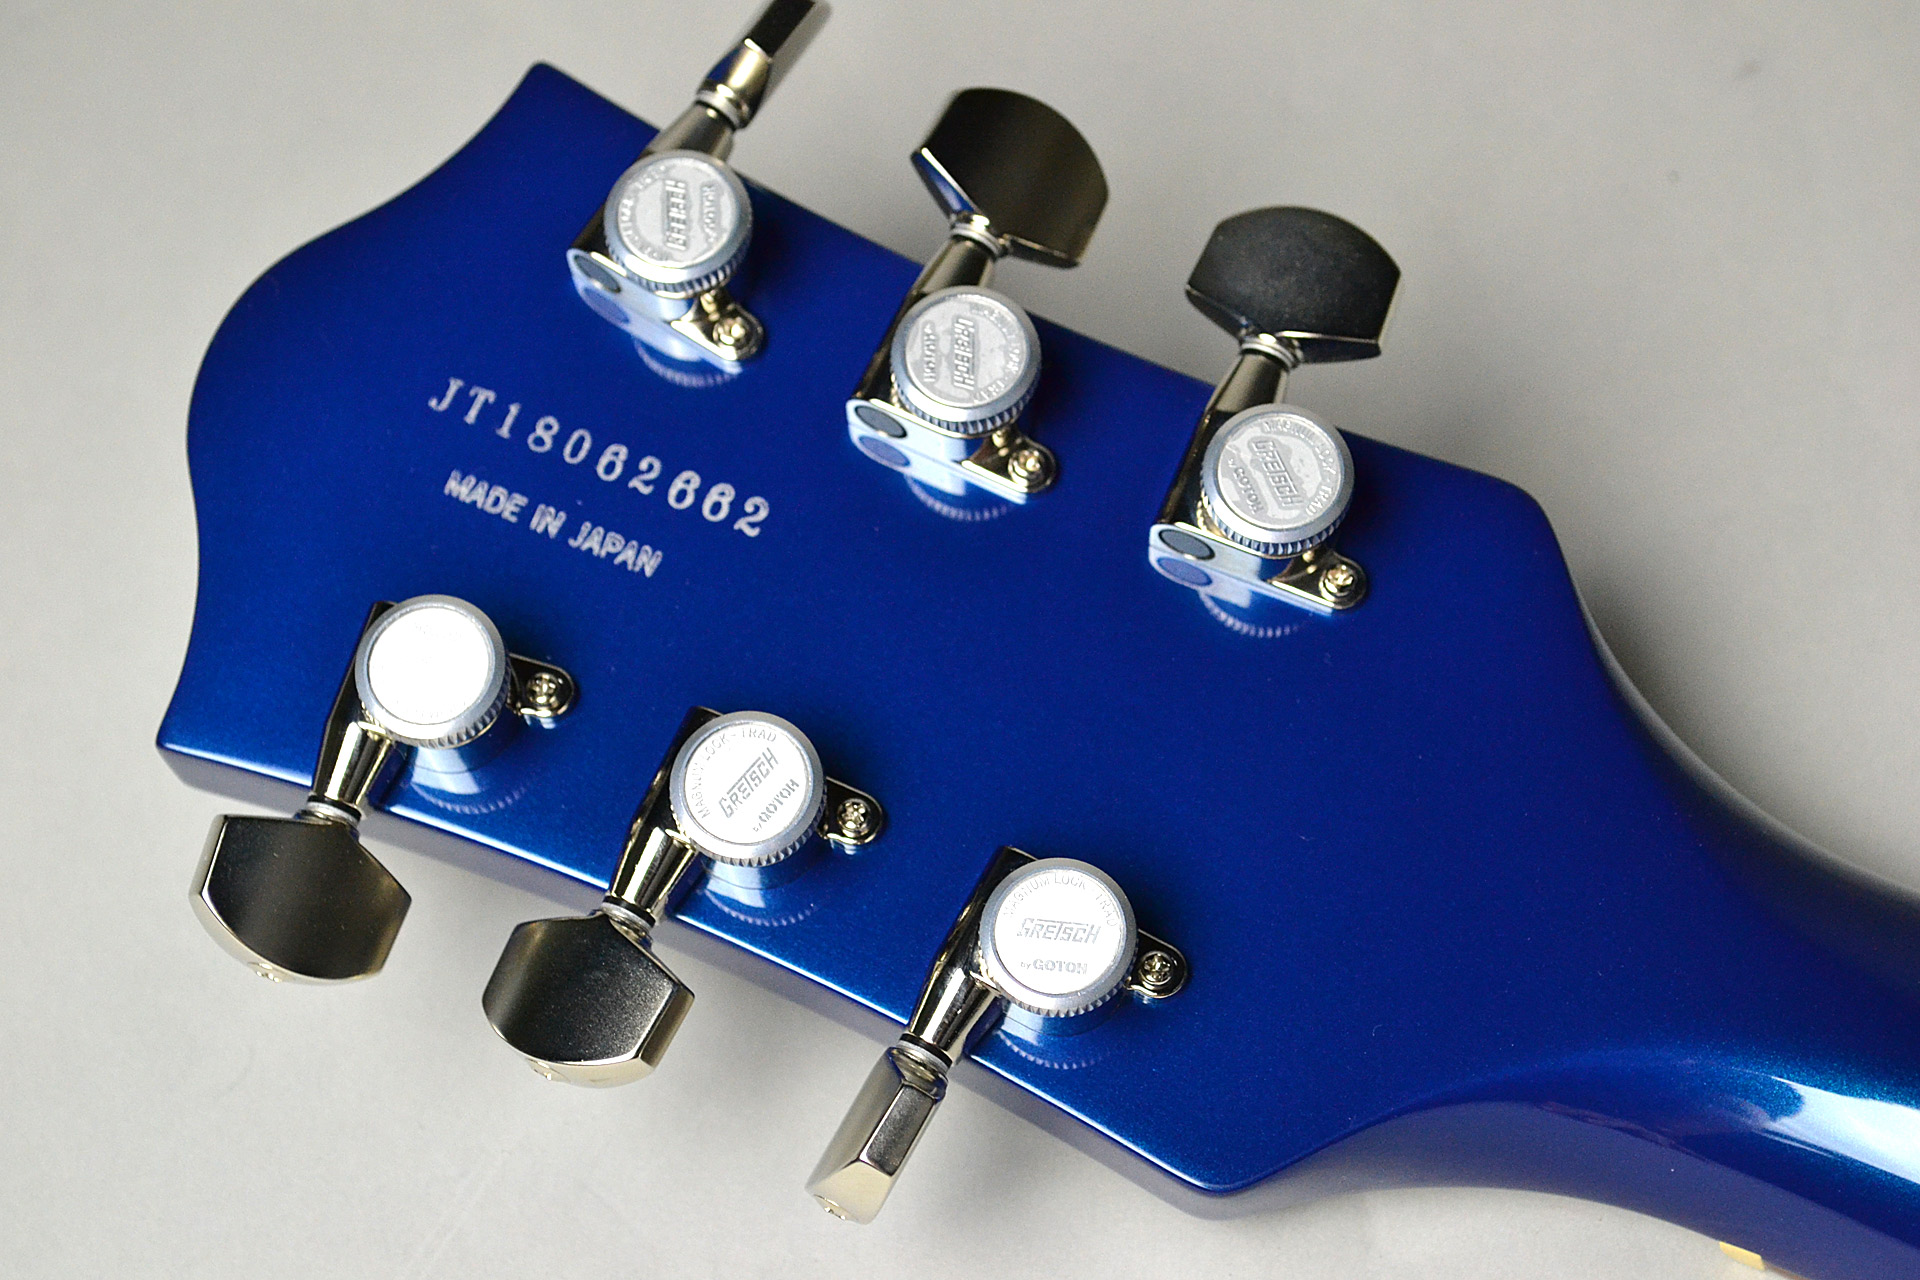 G6118T Players Edition Anniversary 2-Tone Iridium Silver/Azure Metallicのヘッド裏-アップ画像